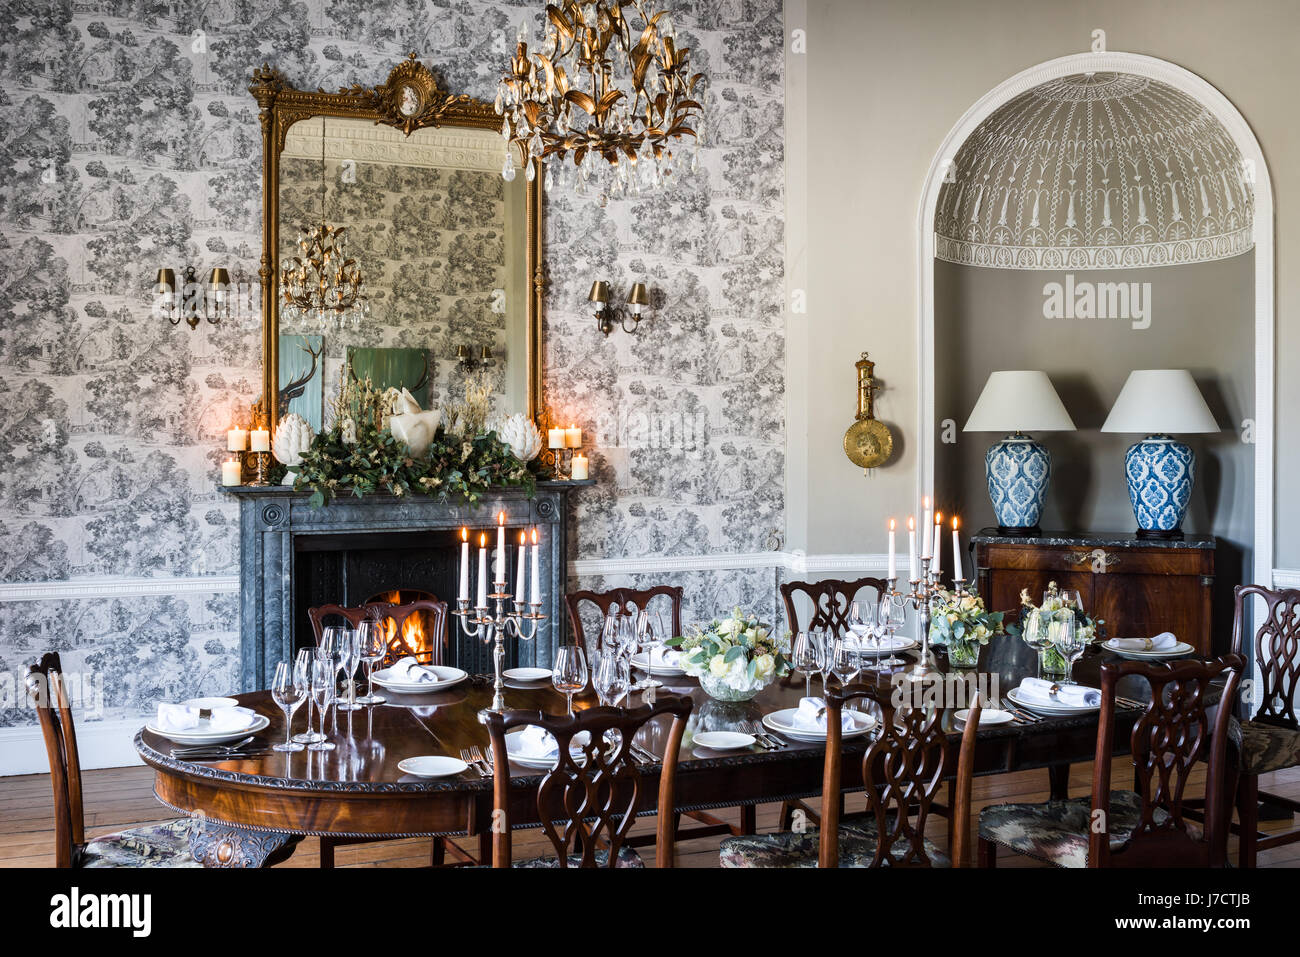 Dining Room With Glass And Gilt Chandelier From Jfm Interiors Above Table Laid For A Formal Meal Large Mirror Is The Mantelpiece